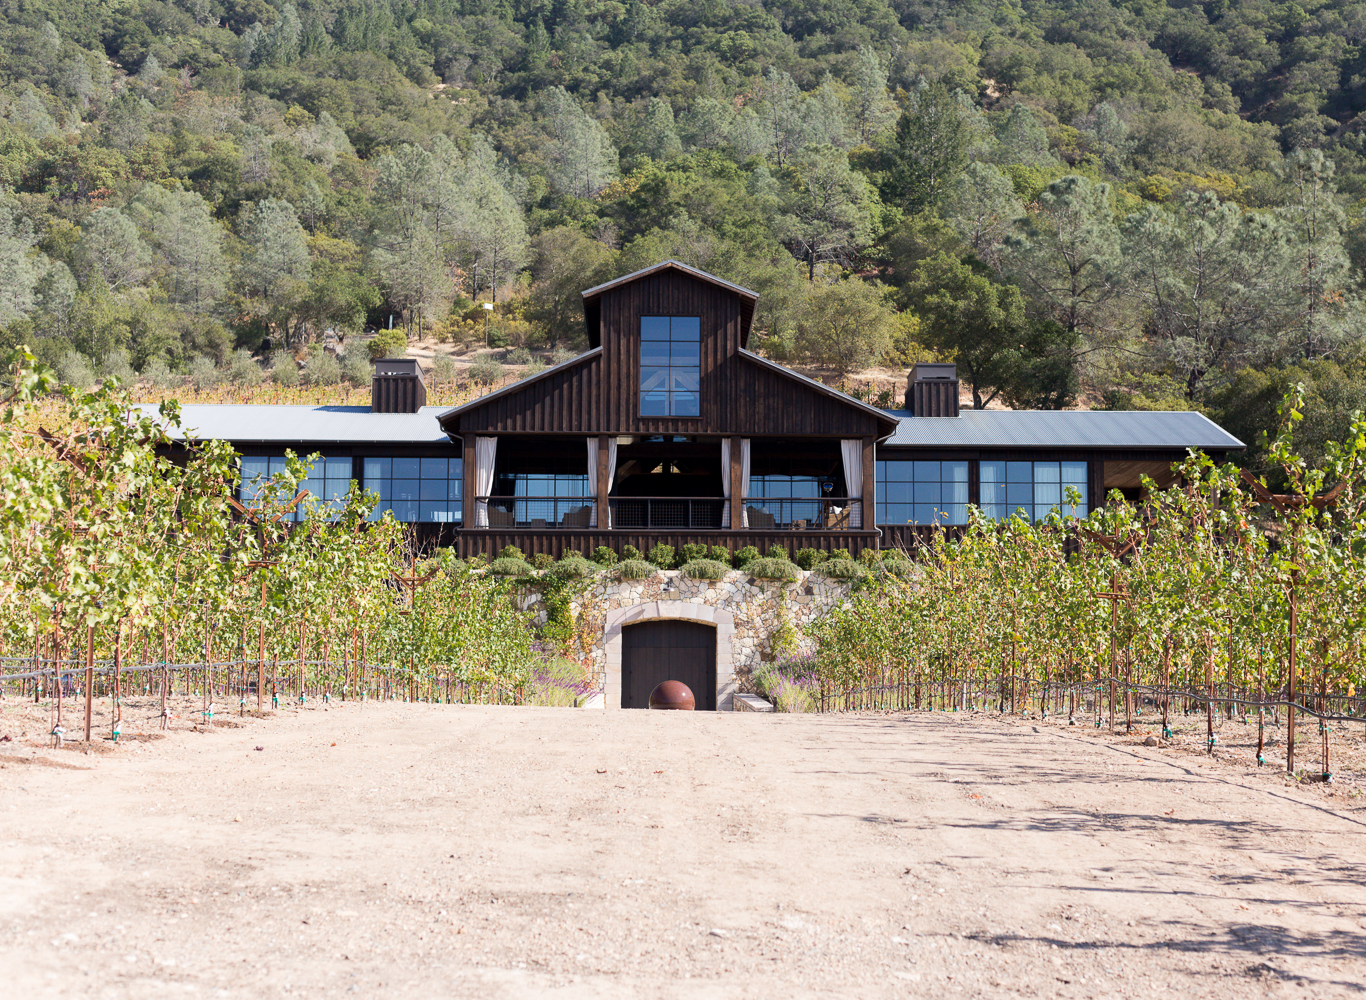 A Day Trip To Napa Valley